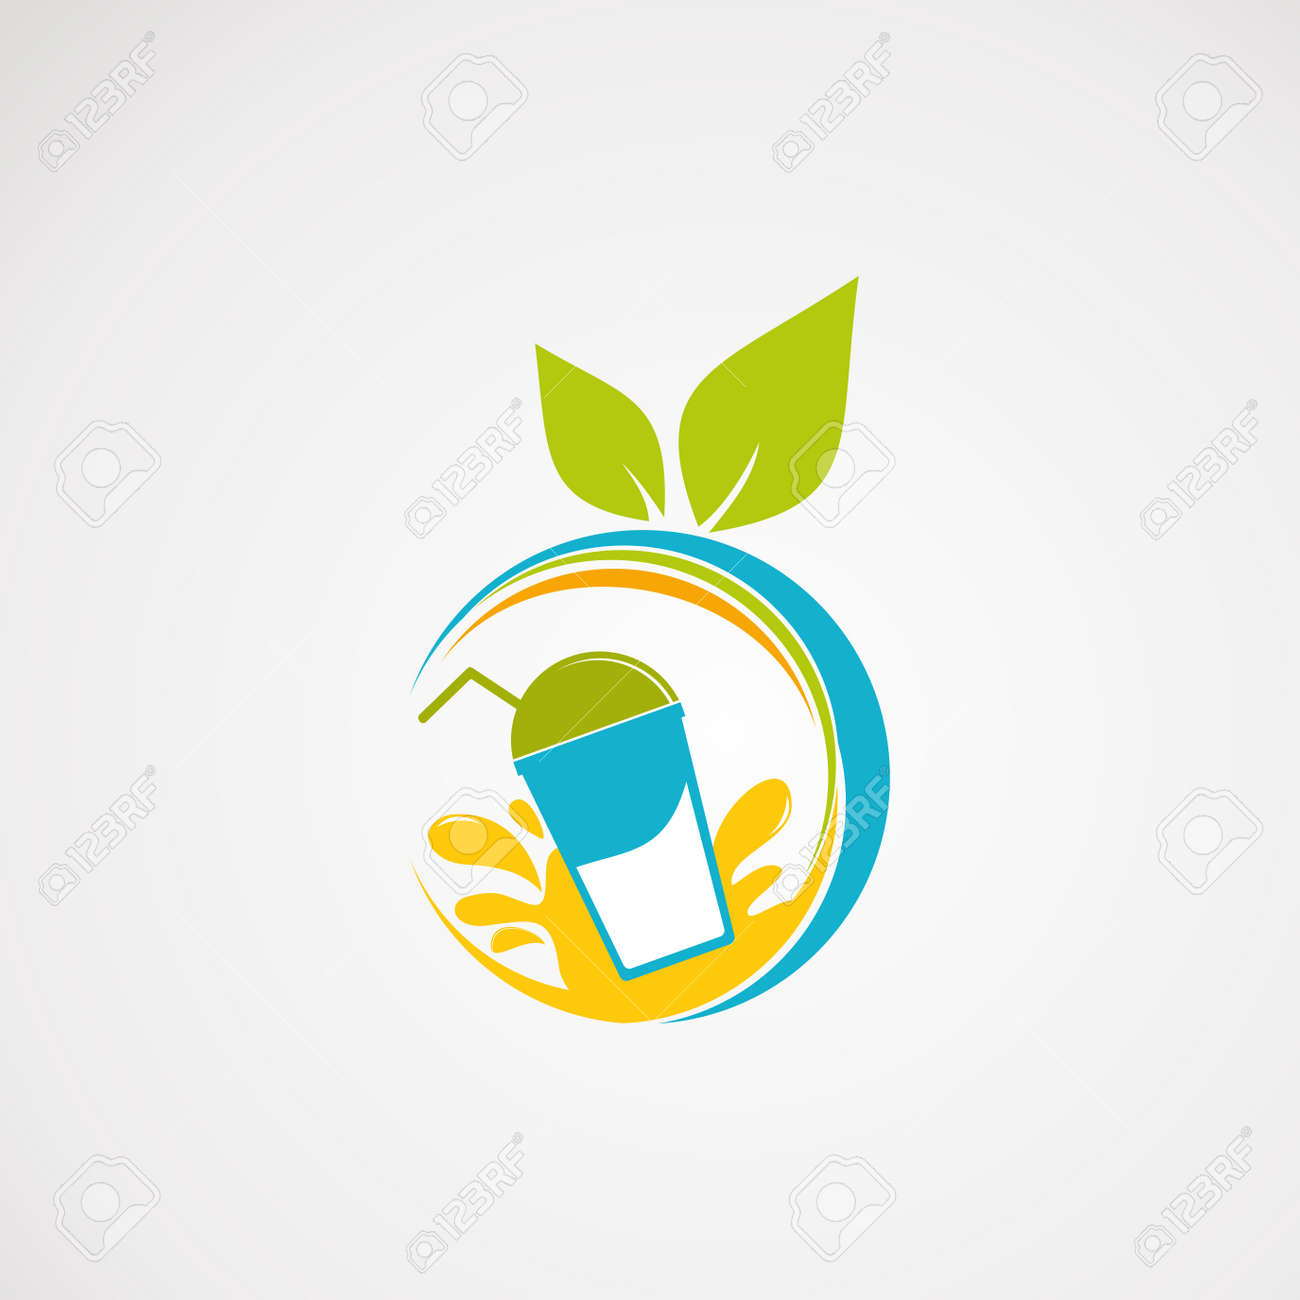 fresh juice logo vector, icon, element, and template - 120256329